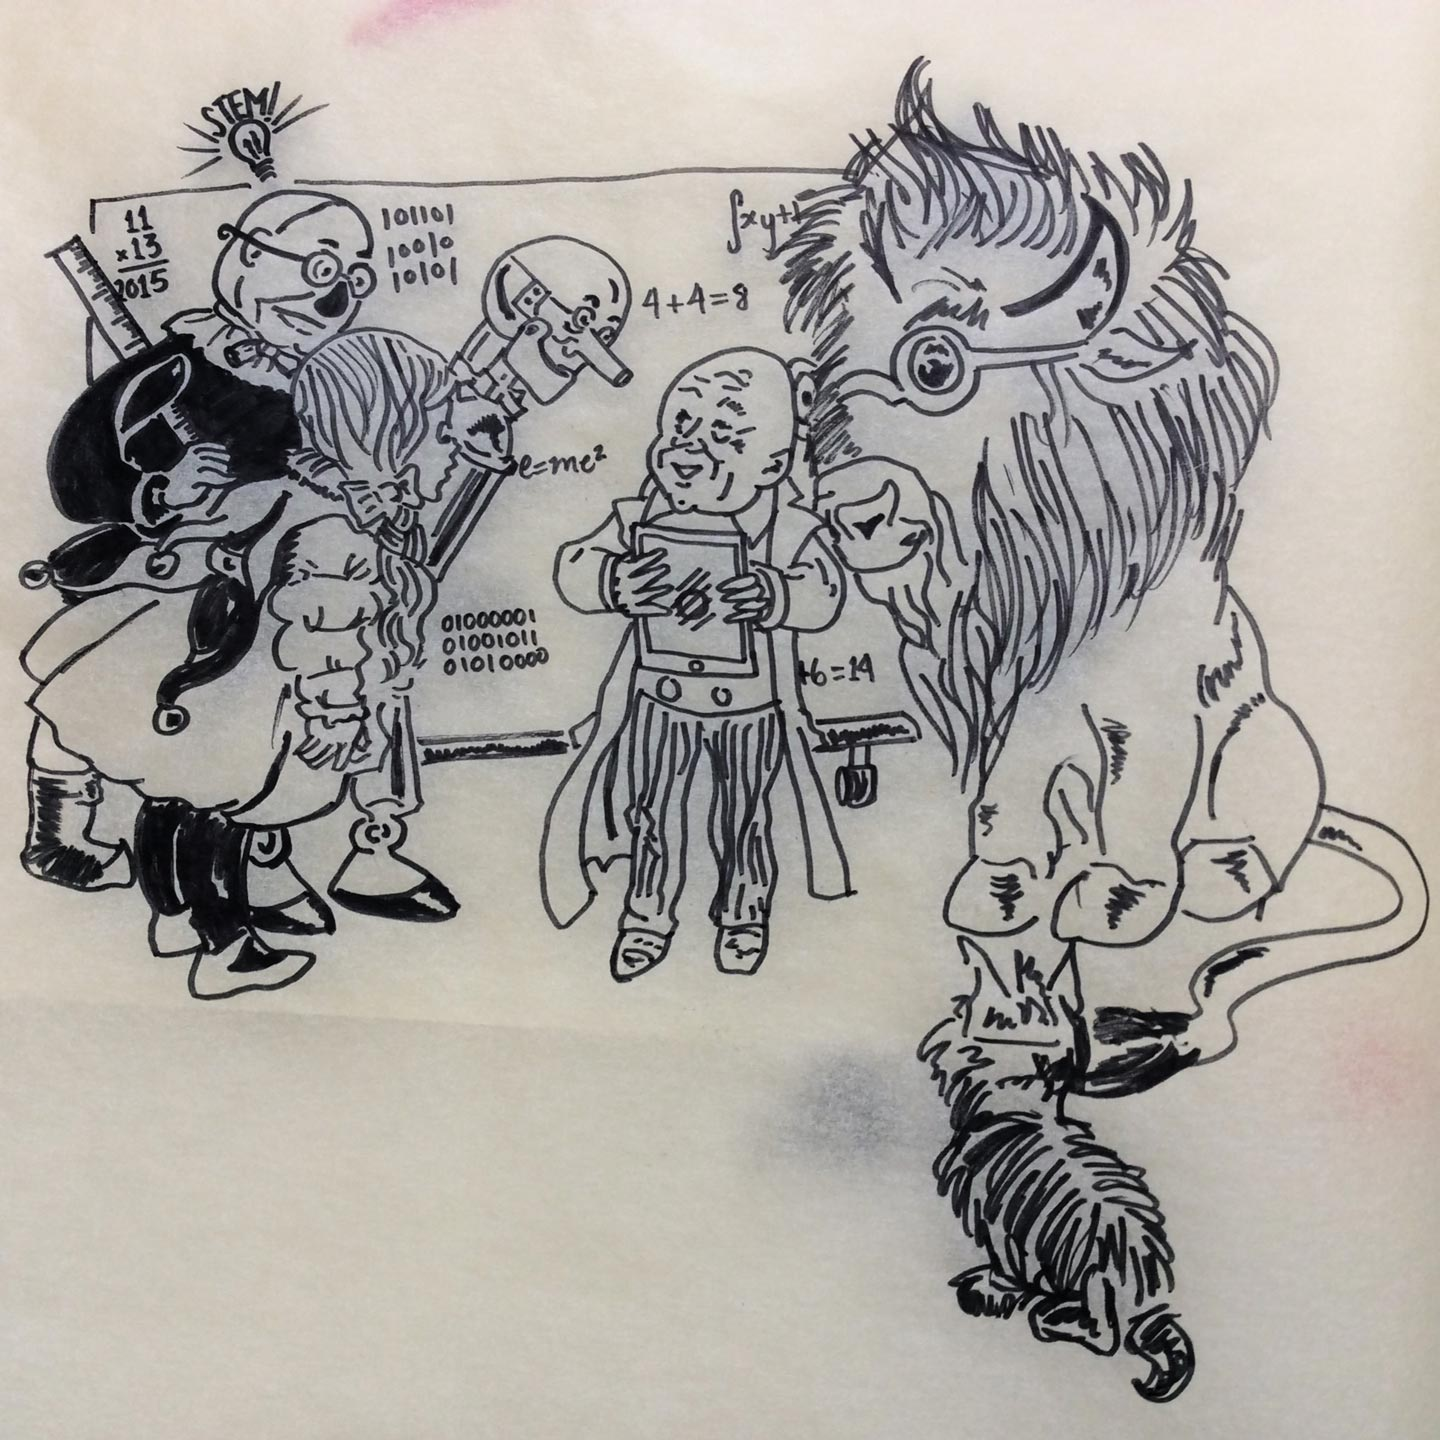 Illustration of Wizard of Oz characters with a bison in place of the lion on tracing paper